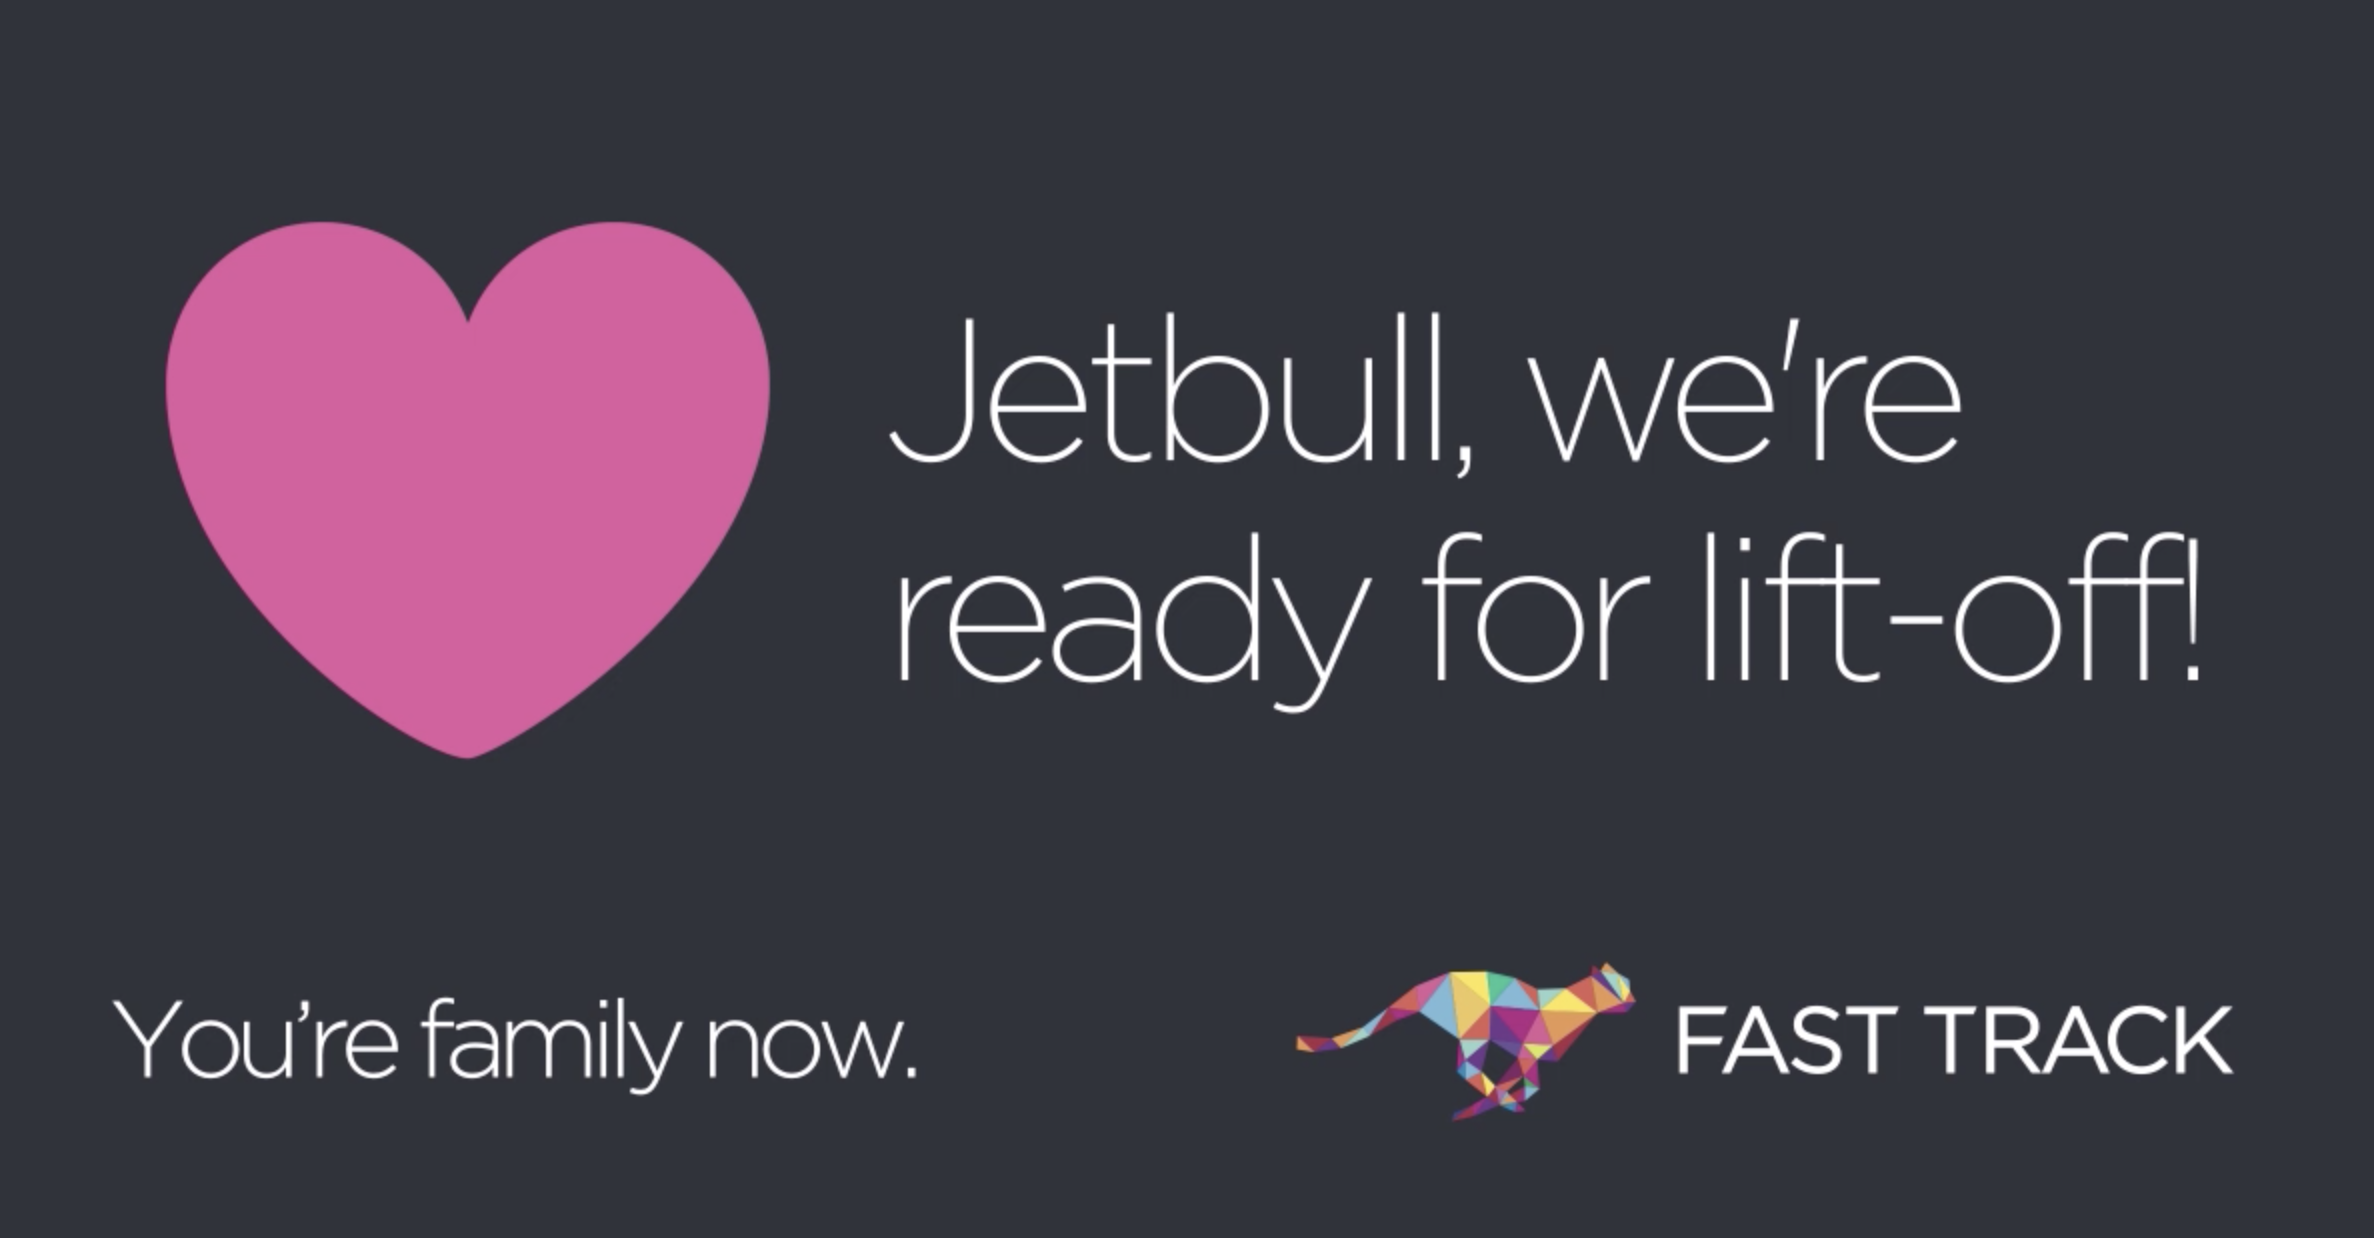 Jetbull goes live with FAST TRACK